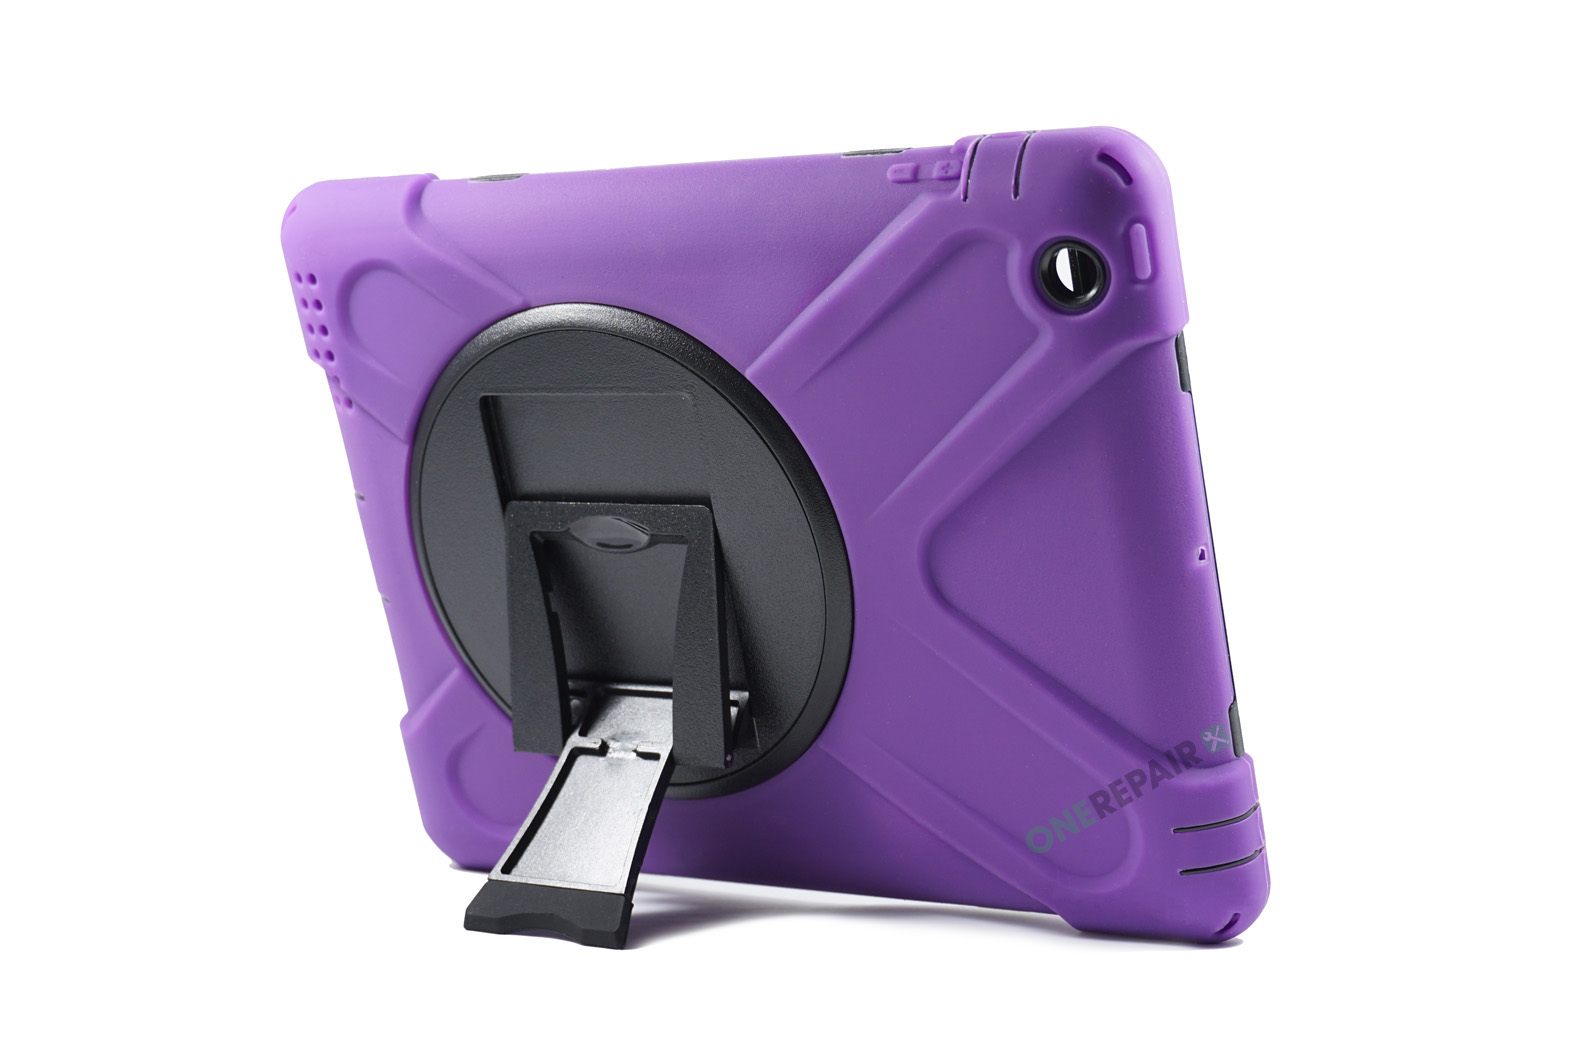 350983_iPad_2_3_4_A1395_A1396_A1430_A1403_1458_A1459_A1460_A1397_3-in-1_Bagcover_Cover_Børne_Skole_Hardcase_Lilla_Billig_Godt_Beskyttelse_OneRepair_WM_00004